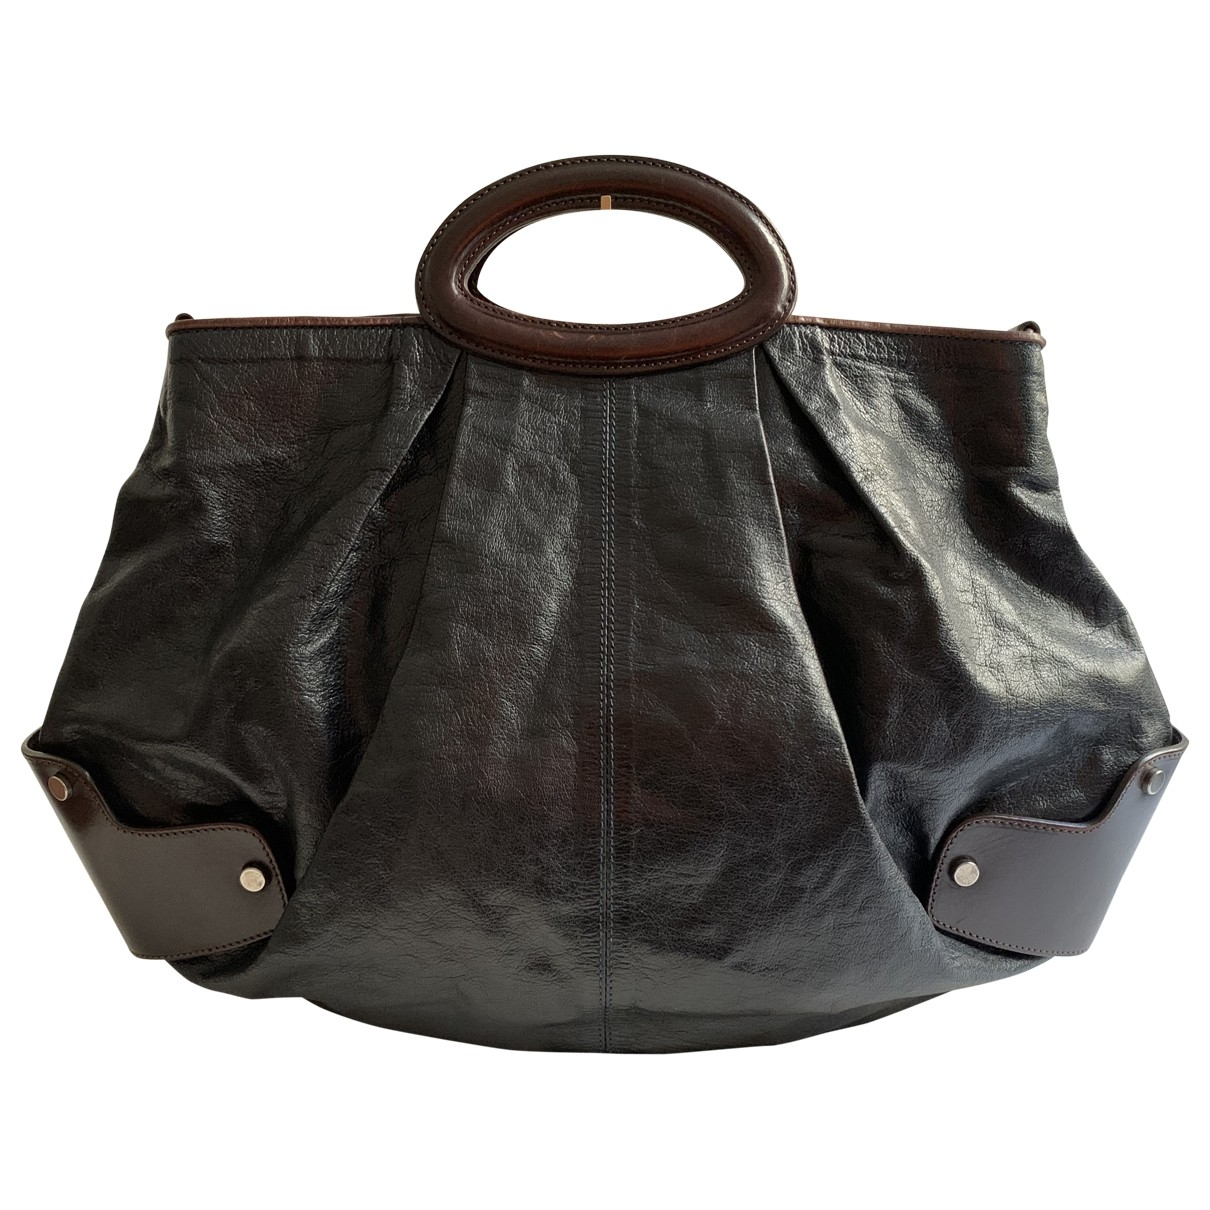 Marni \N Black Leather handbag for Women \N